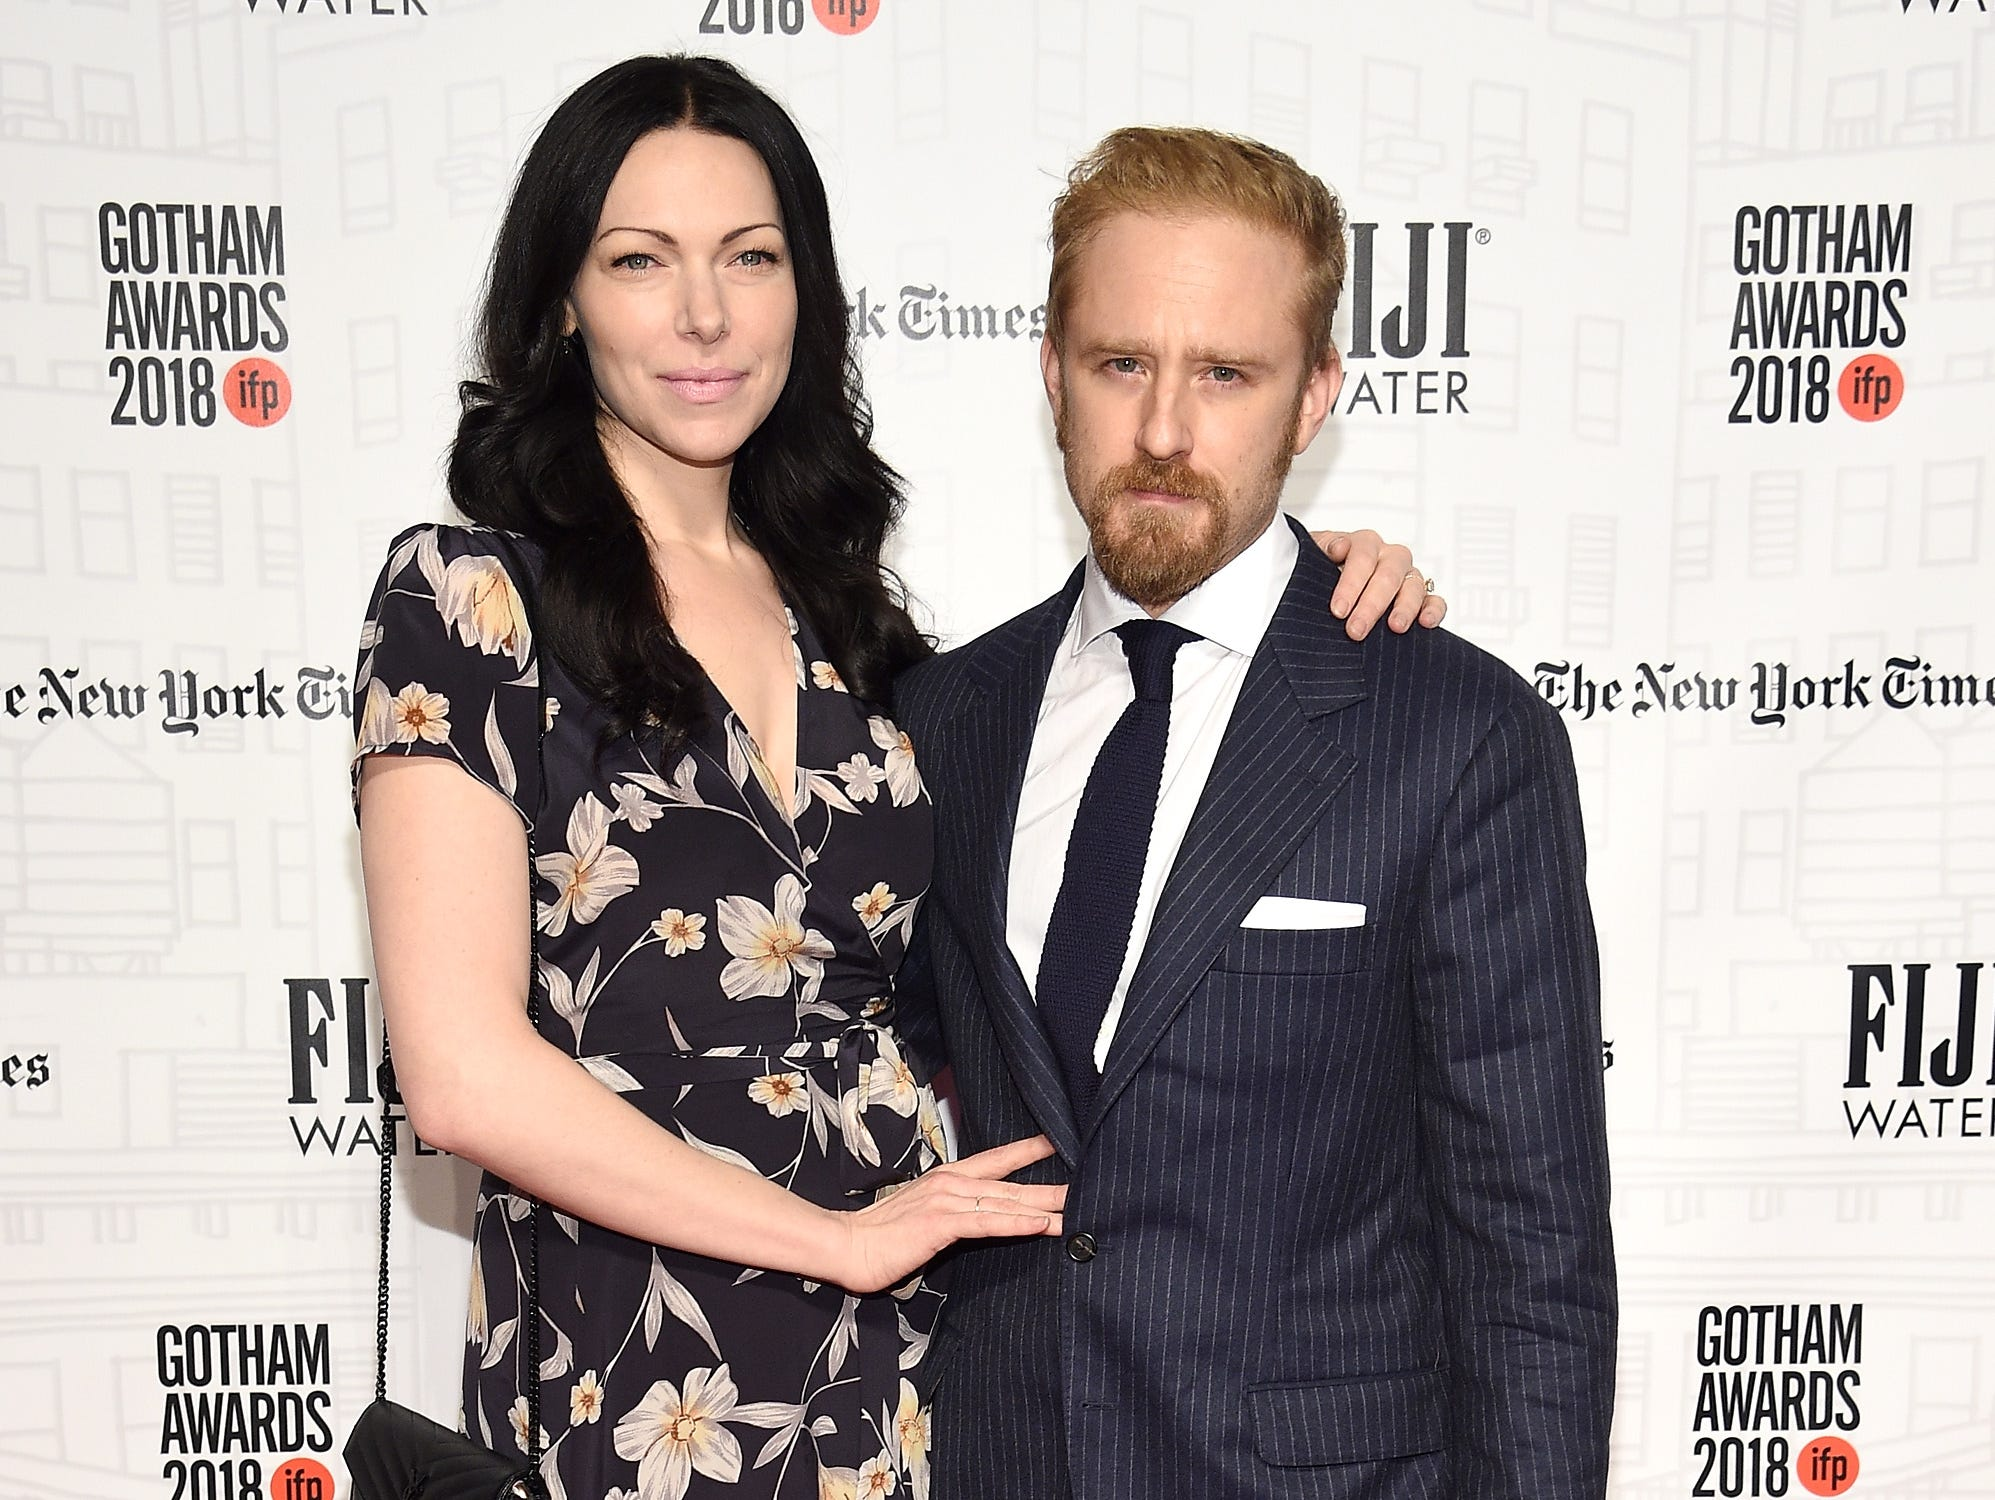 NEW YORK, NY - NOVEMBER 26:  Laura Prepon and Ben Foster attend IFP's 27th Annual Gotham Independent Film Awards at Cipriani, Wall Street on November 26, 2018 in New York City.  (Photo by Dimitrios Kambouris/Getty Images for IFP) ORG XMIT: 775261541 ORIG FILE ID: 1065552128